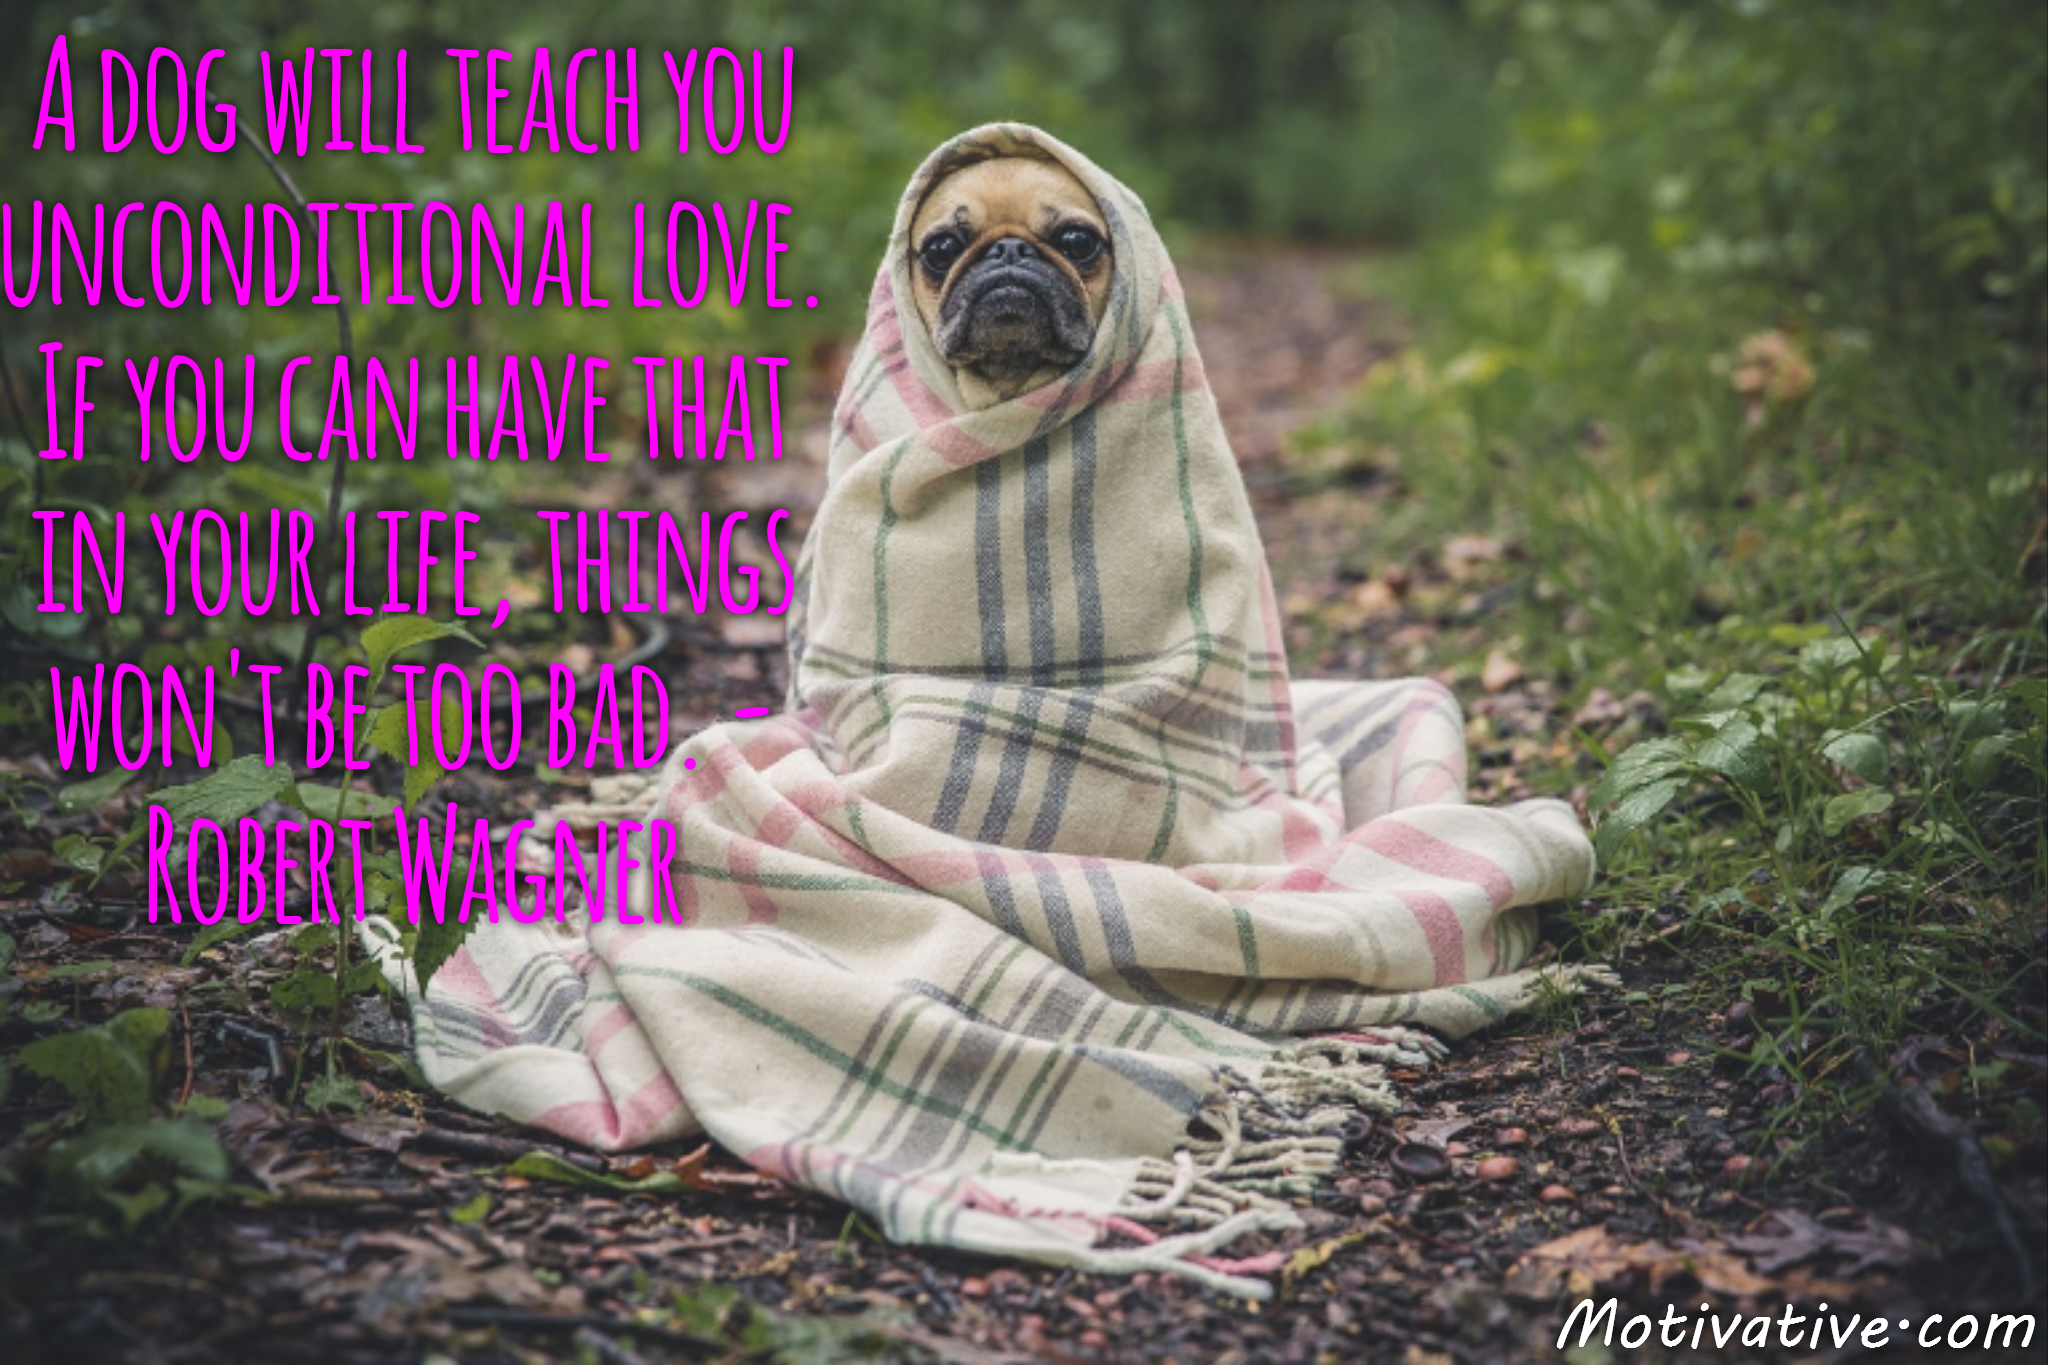 A dog will teach you unconditional love. If you can have that in your life, things won't be too bad. – Robert Wagner